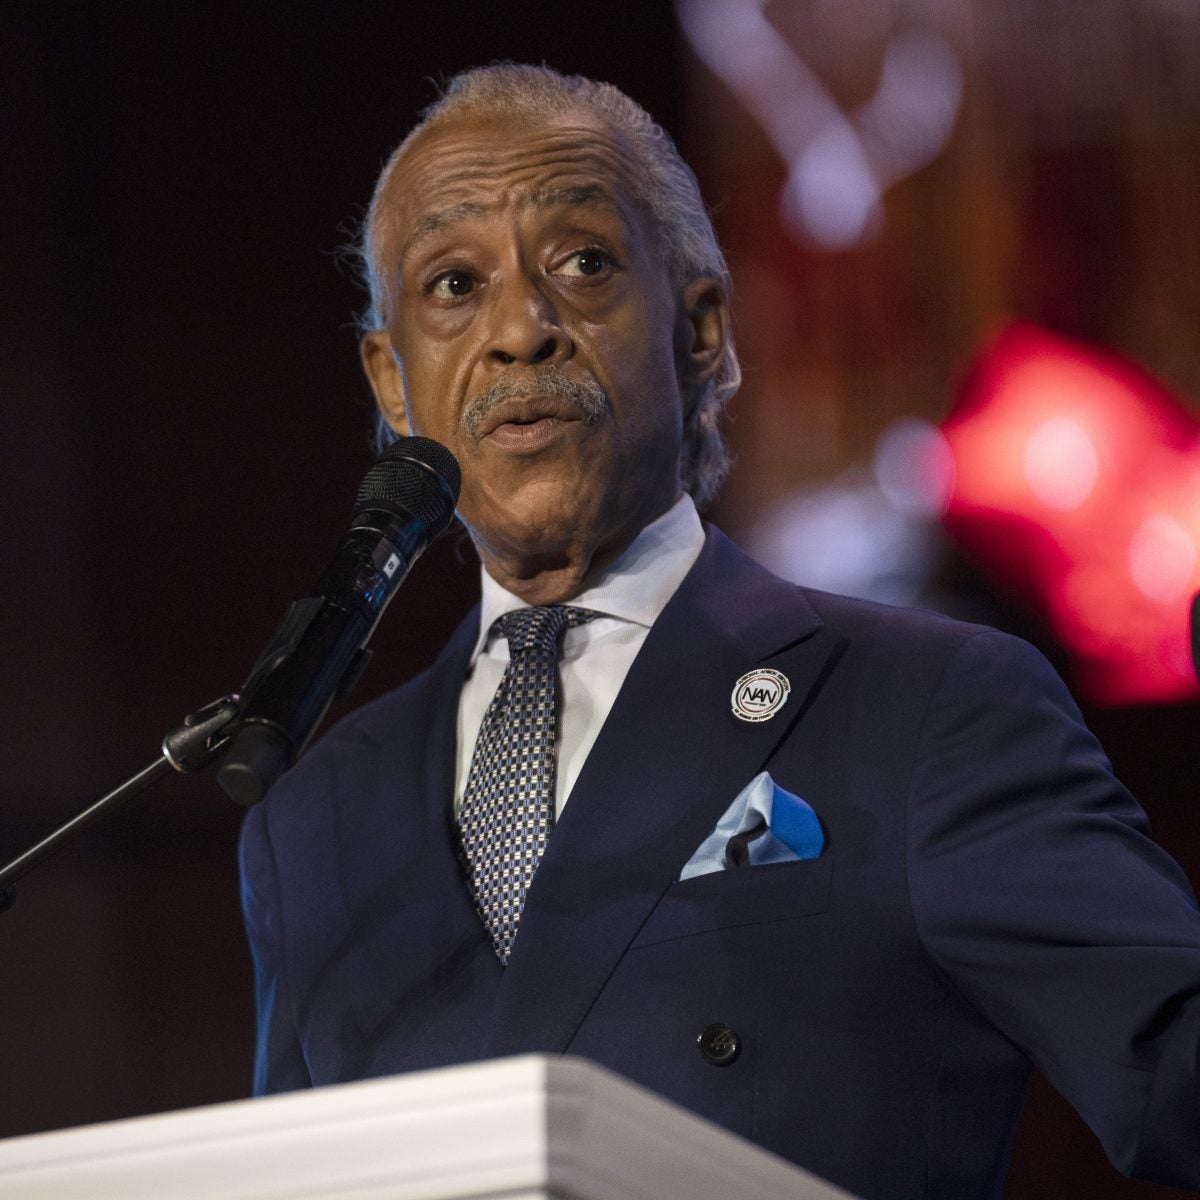 Rev. Al Sharpton: America, 'Get Your Knee Off Our Necks'